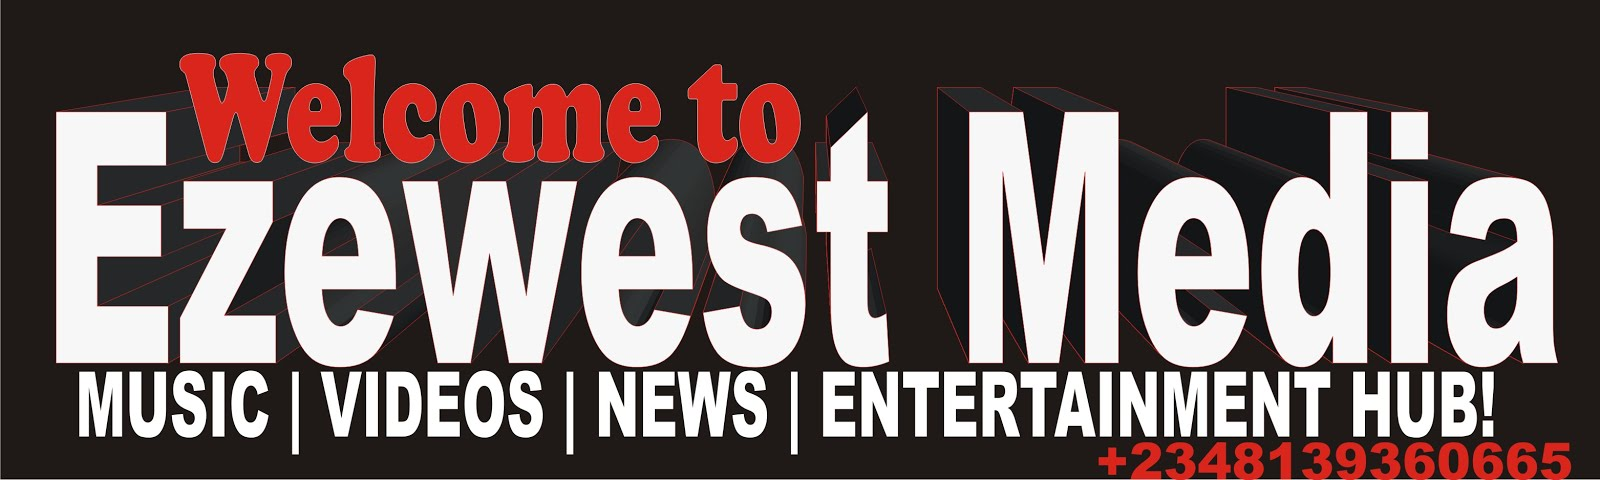 EzewestMedia.com | MUSIC, VIDEOS, NEWS, TUTORIAL & ENTERTAINMENT  WEBSITE